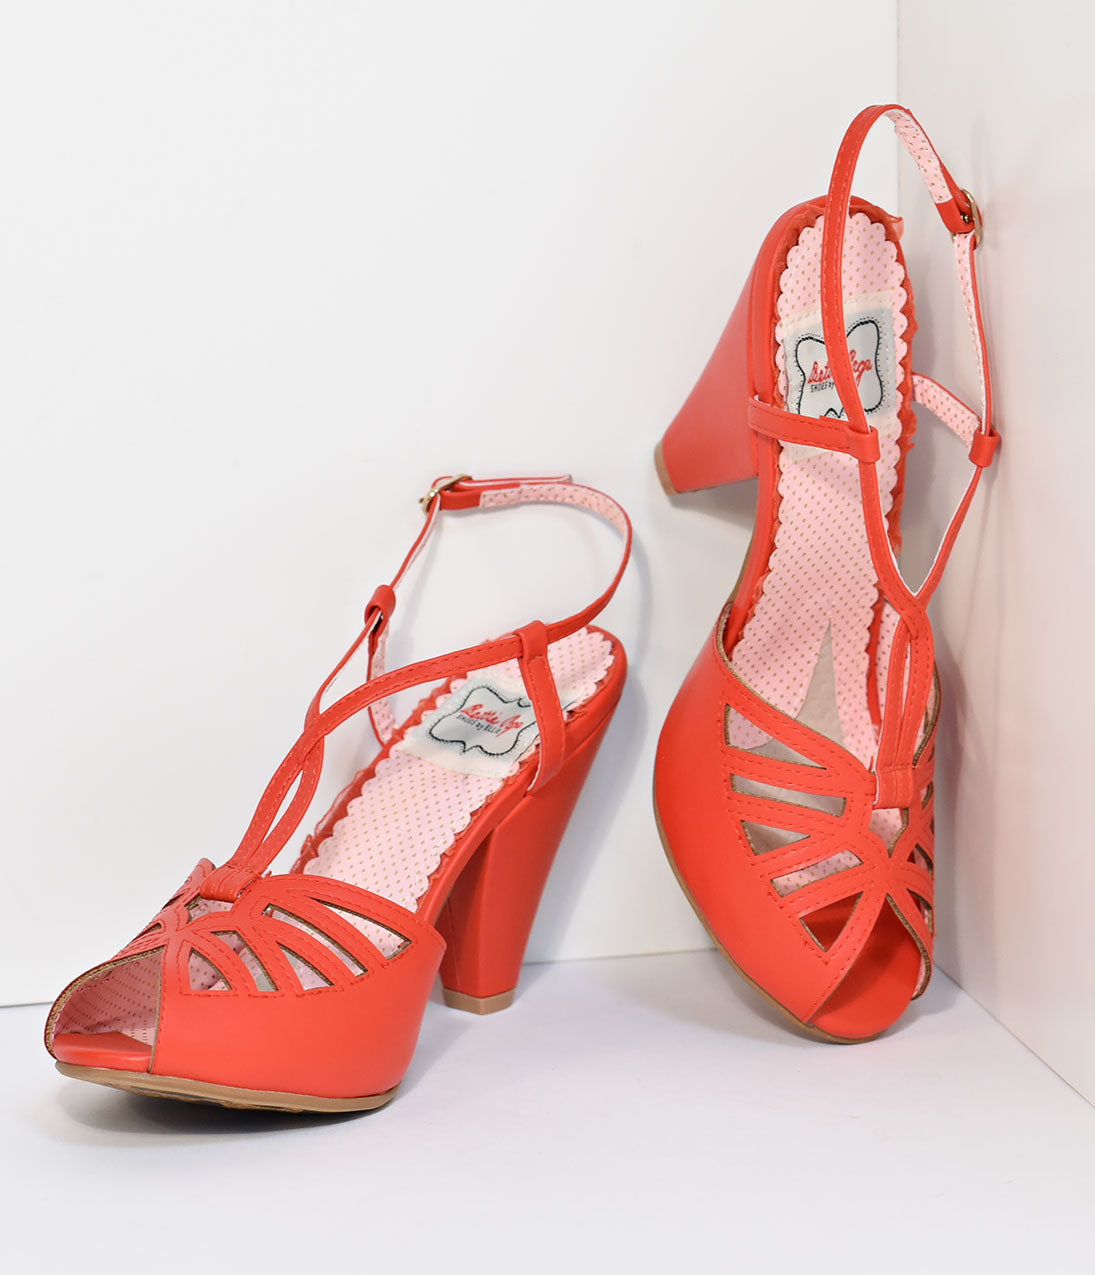 1950s Style Shoes | Heels, Flats, Saddle Shoes Bettie Page Red Slingback Cut-Out Aria Heels $76.00 AT vintagedancer.com